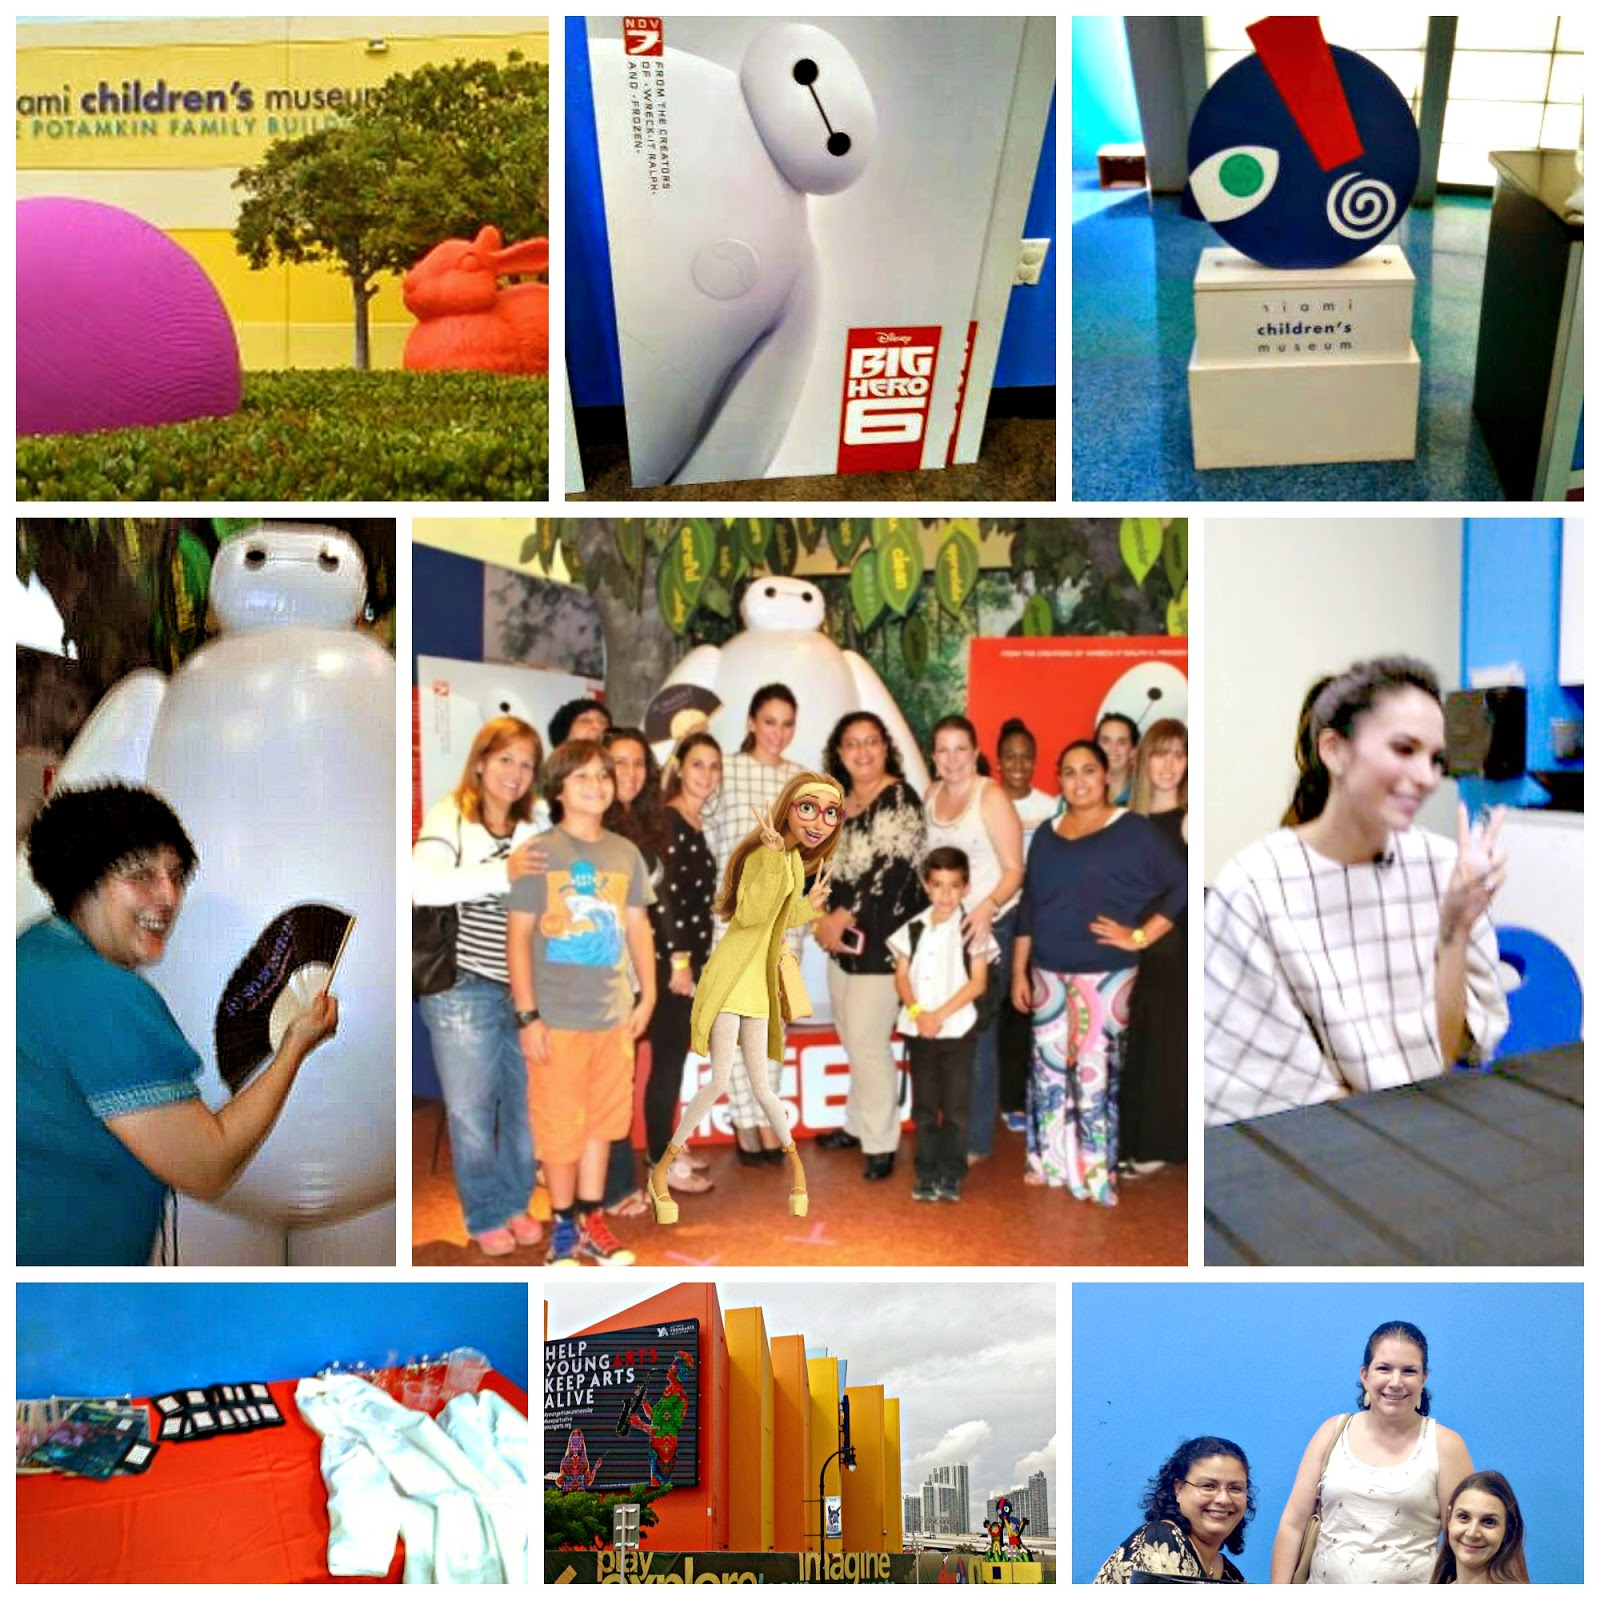 Big Hero 6 Honey Lemon Genesis Rodriguez Baymax Miami Children's Museum